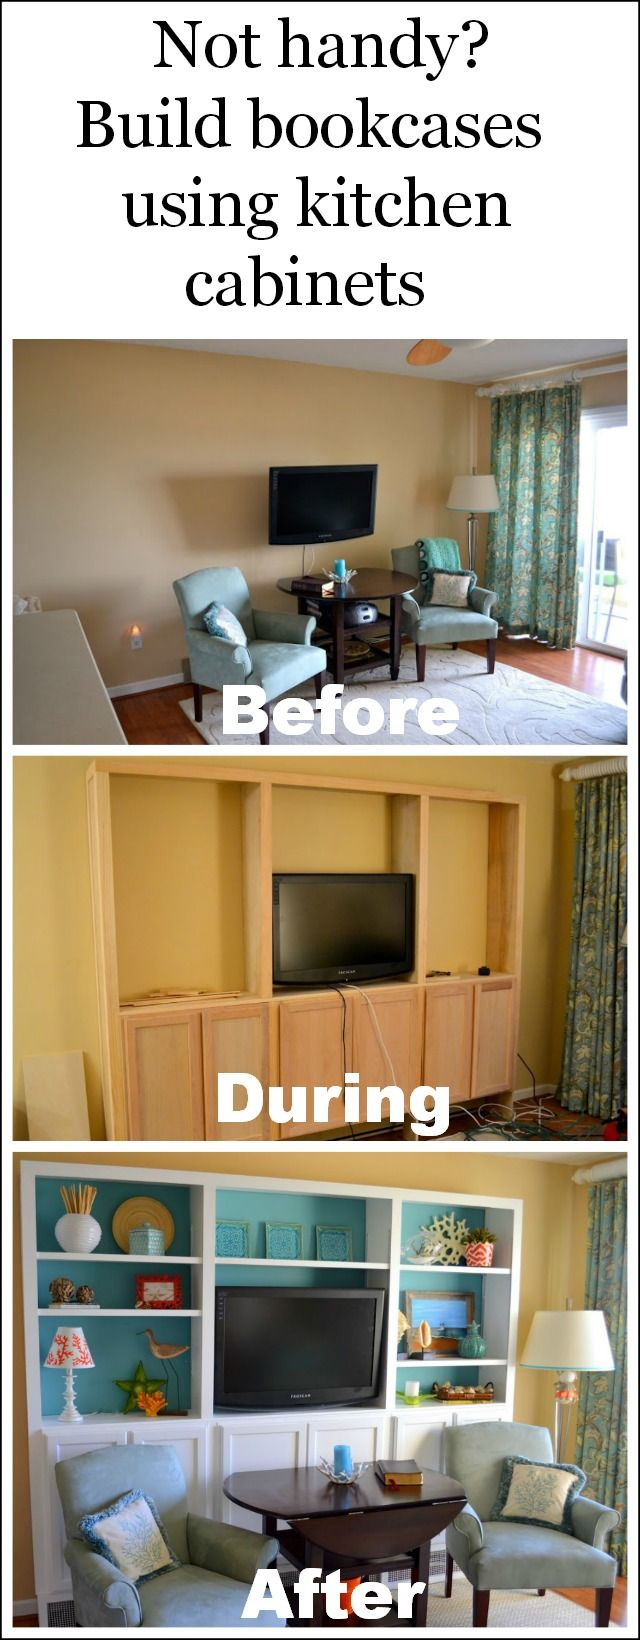 femmesleigh.etsy.com Use discount code: FEB2015 at checkout to save 15%. Wow! What a beautiful before and after! Great diy project for people who don't know a lot about carpentry.  Build bookcases using kitchen cabinets for the base. #diy #bookcases